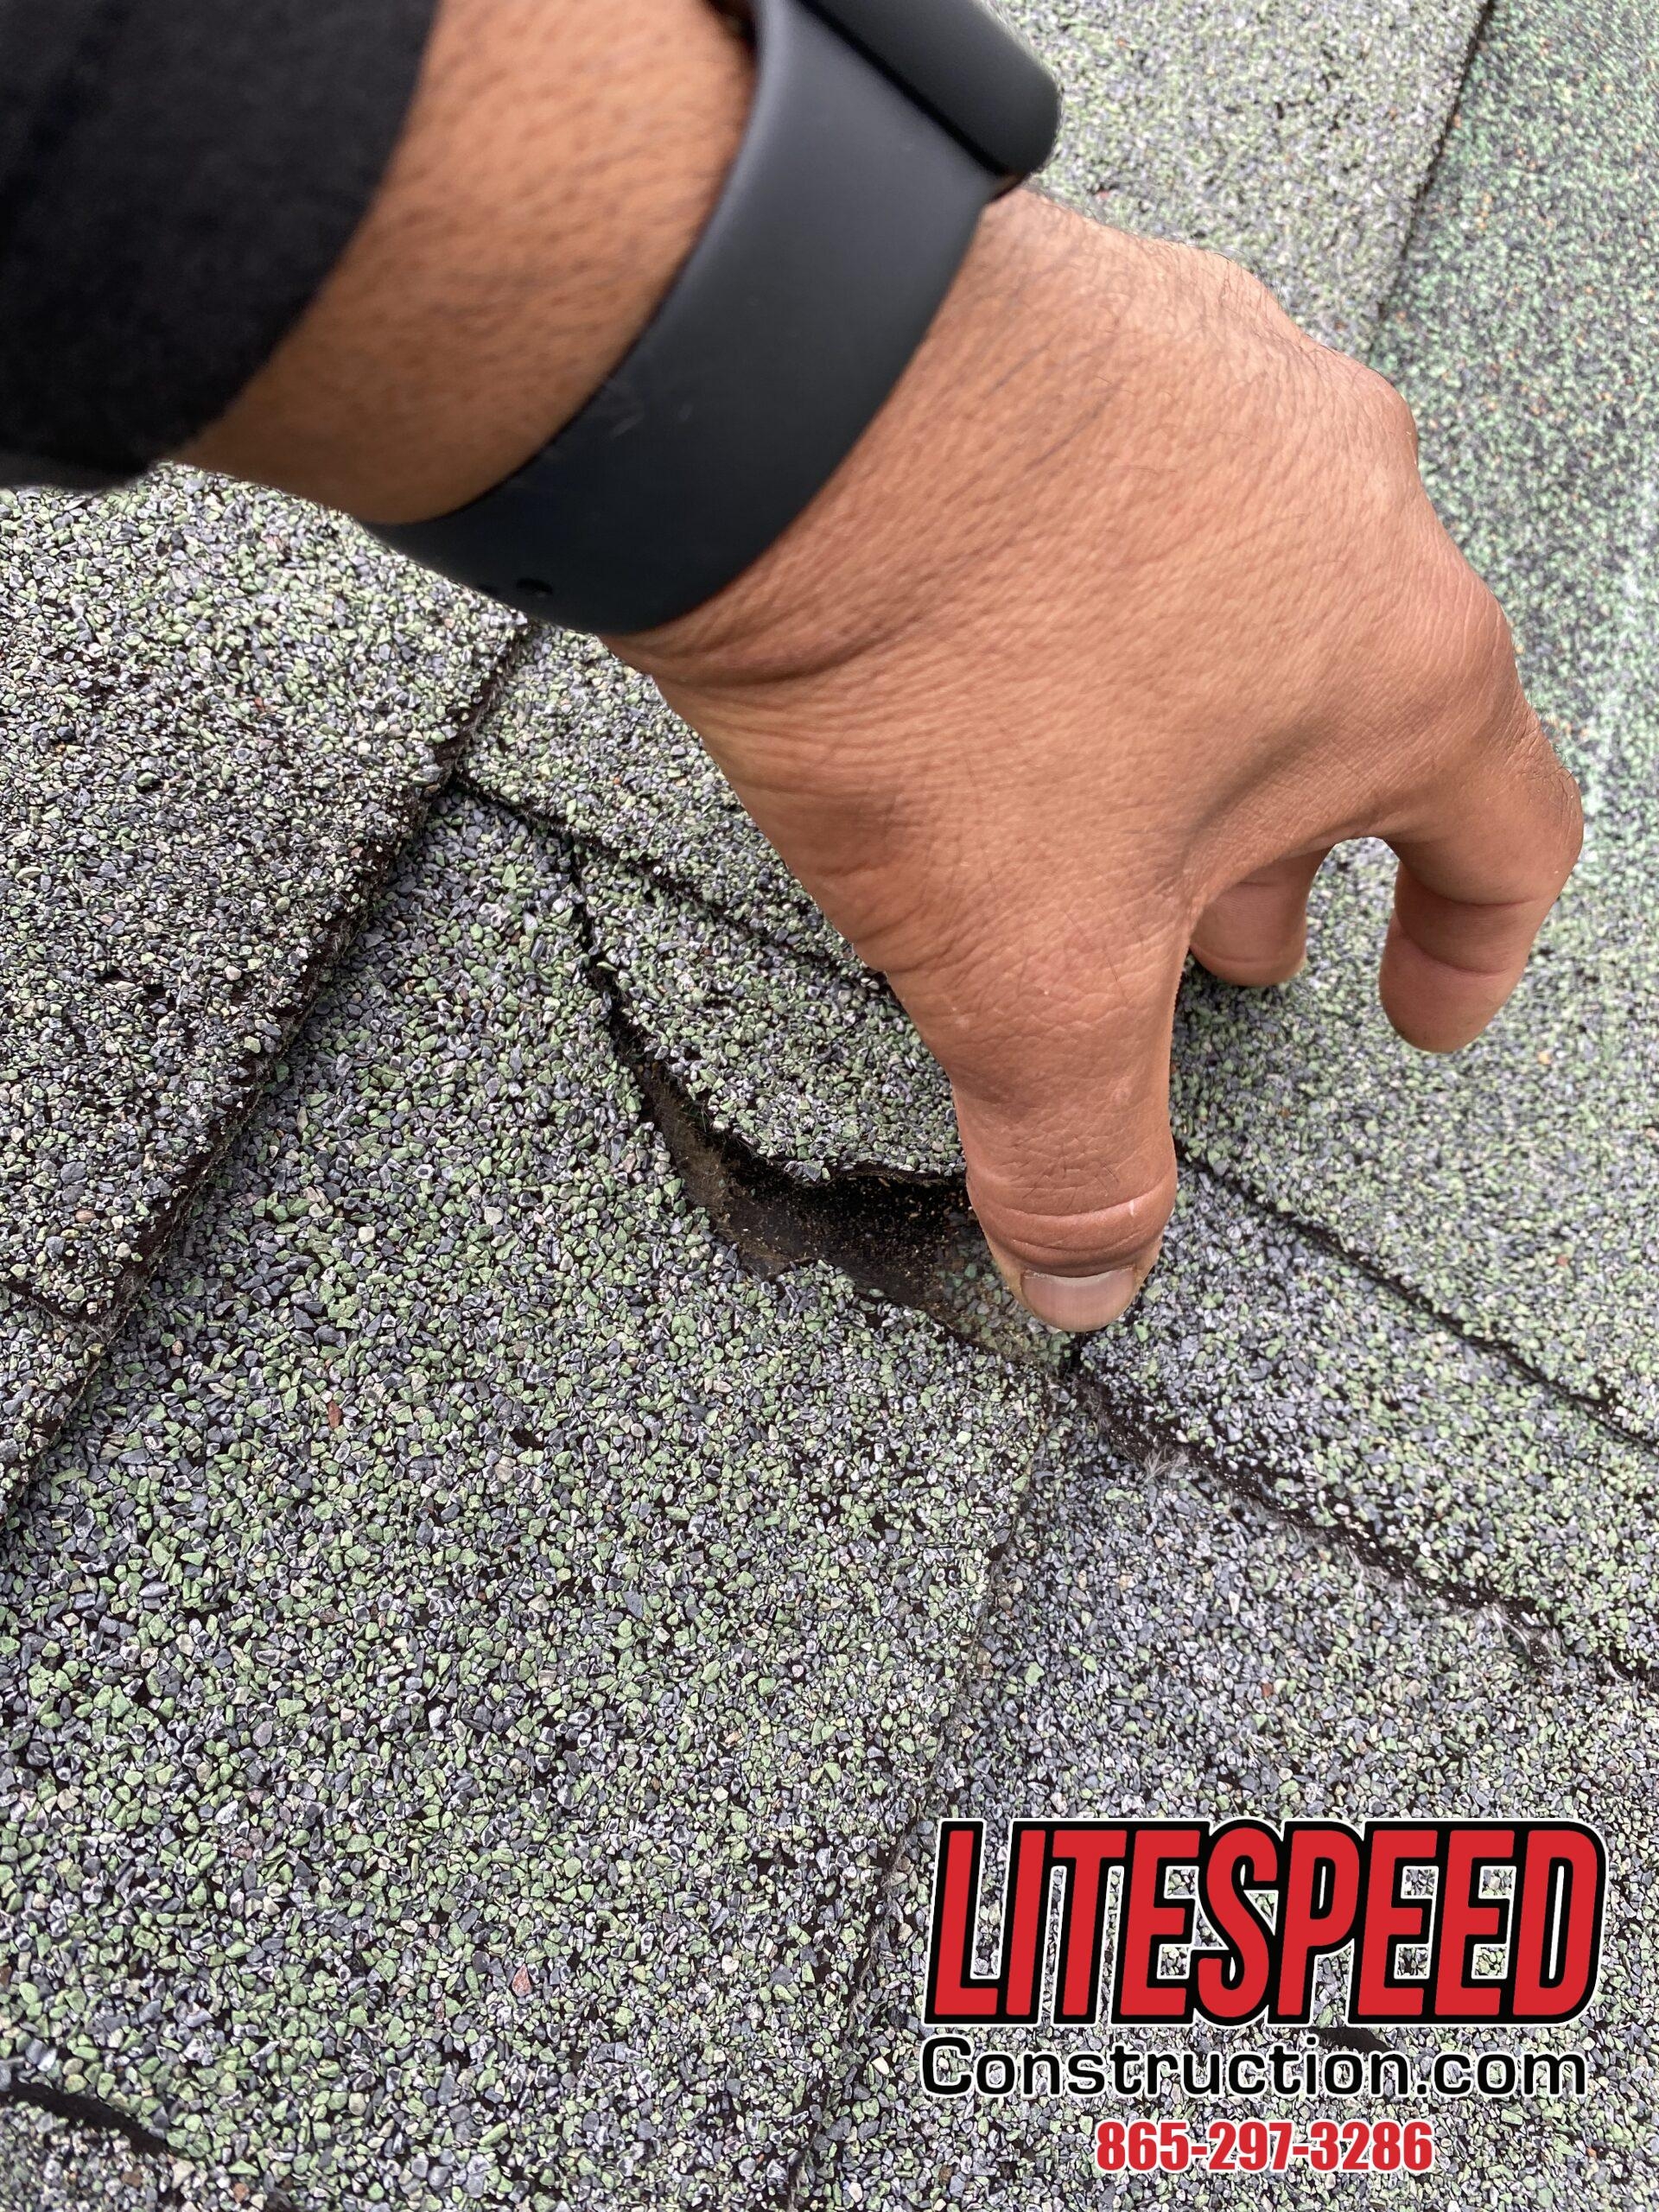 This is a picture of a green shingle that is broken.